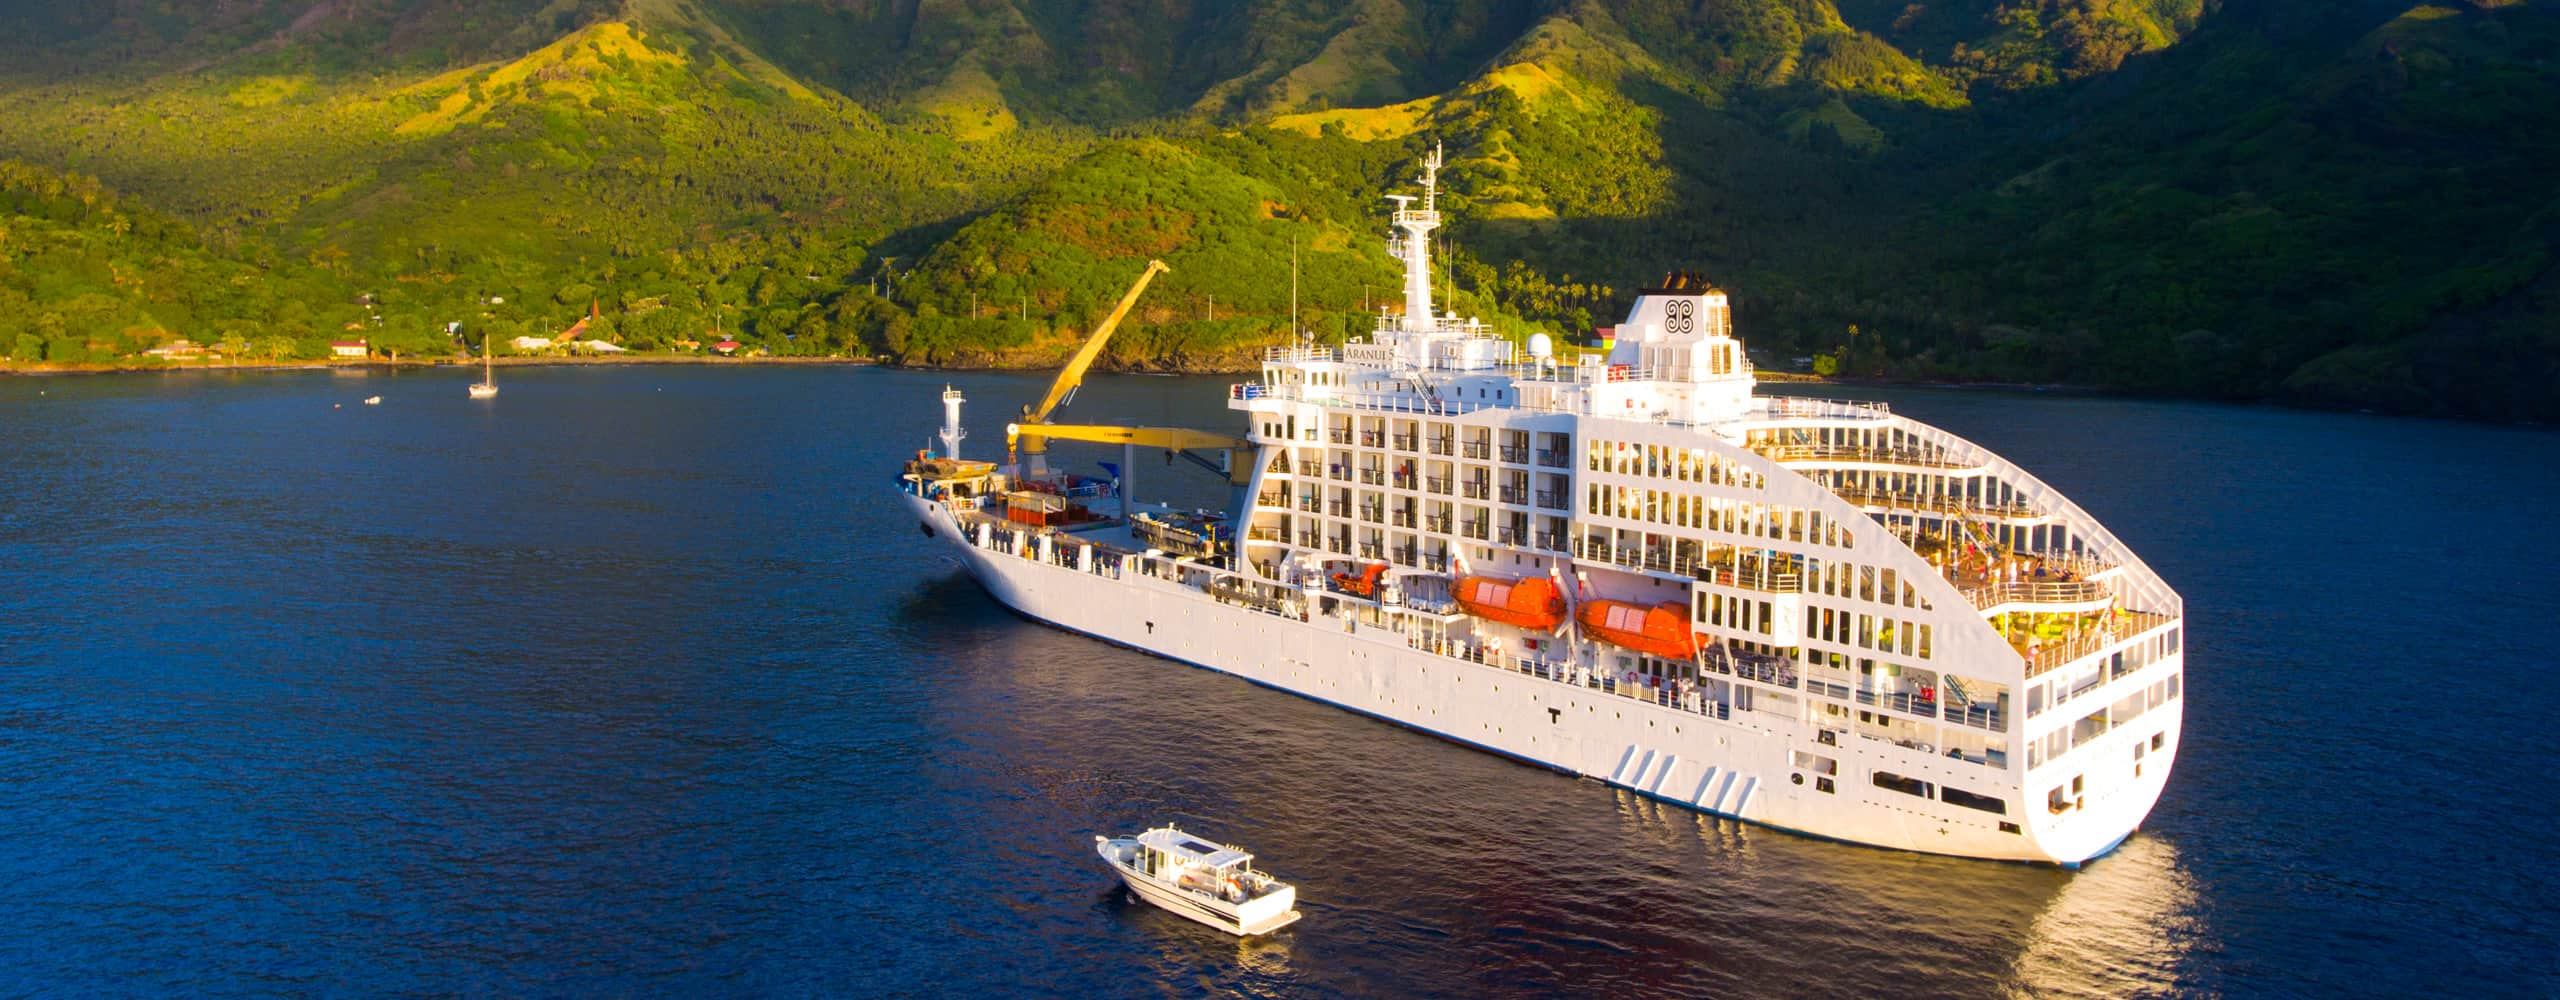 Aranui 5 In The Marquesas Islands, French Polynesia